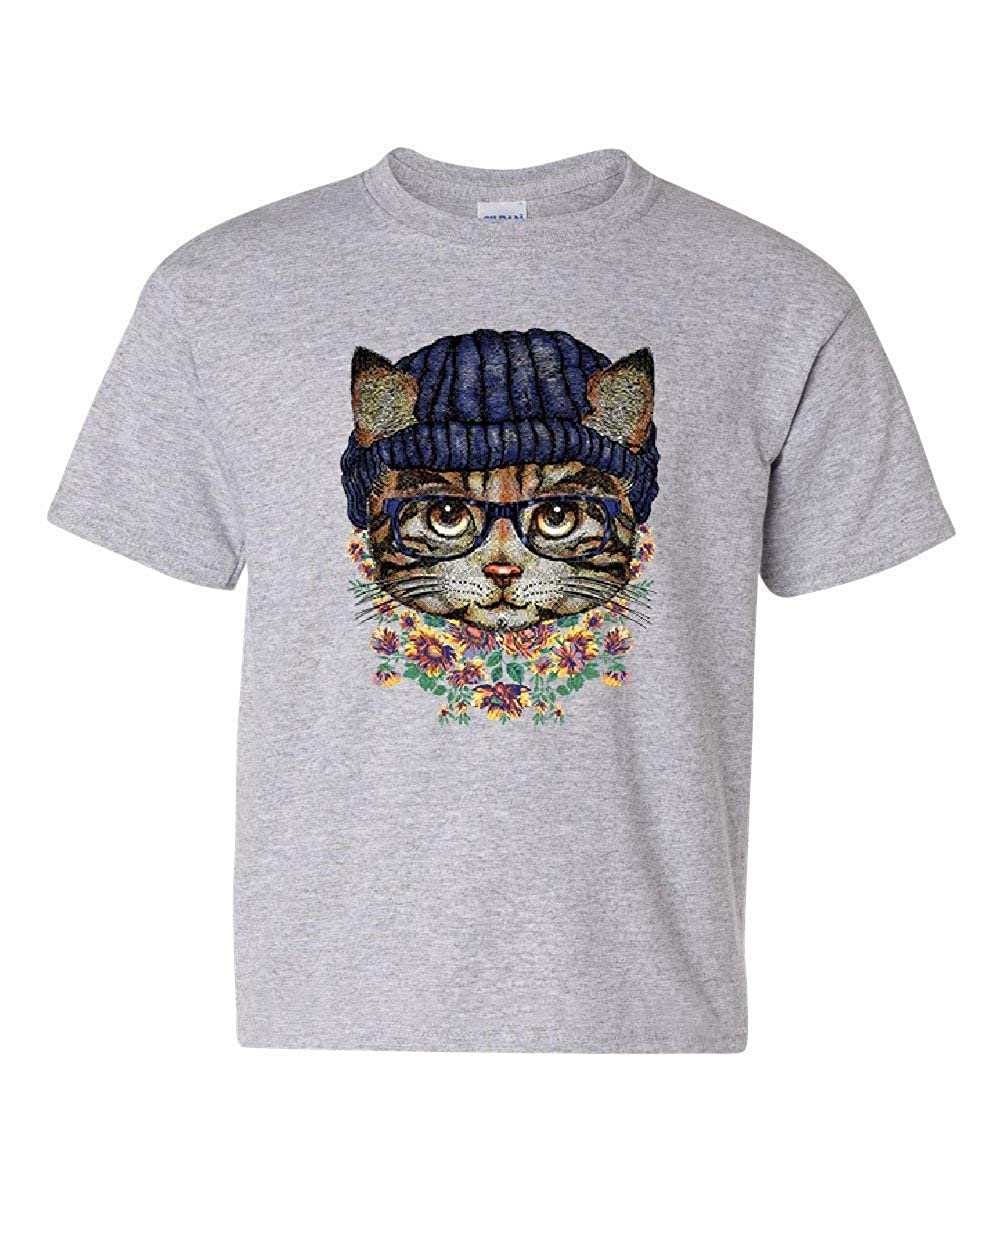 Hipster Kitty in Glasses Beanie Youth T-Shirt Cat Kitten Pop Culture Kids Tee